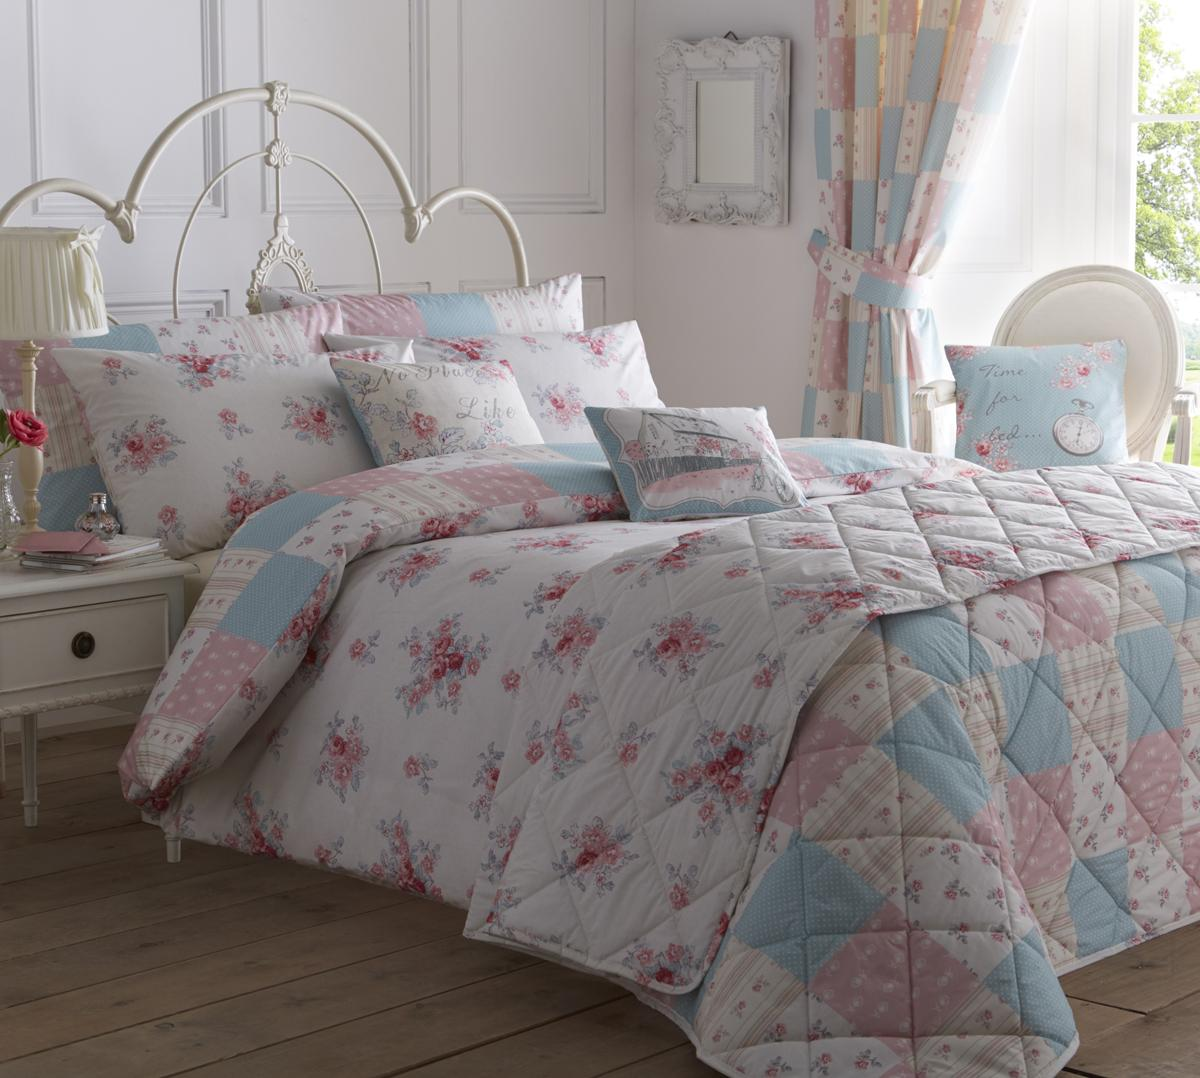 patsy bedding. patsy bedding rose in rose  free uk delivery  terrys fabrics